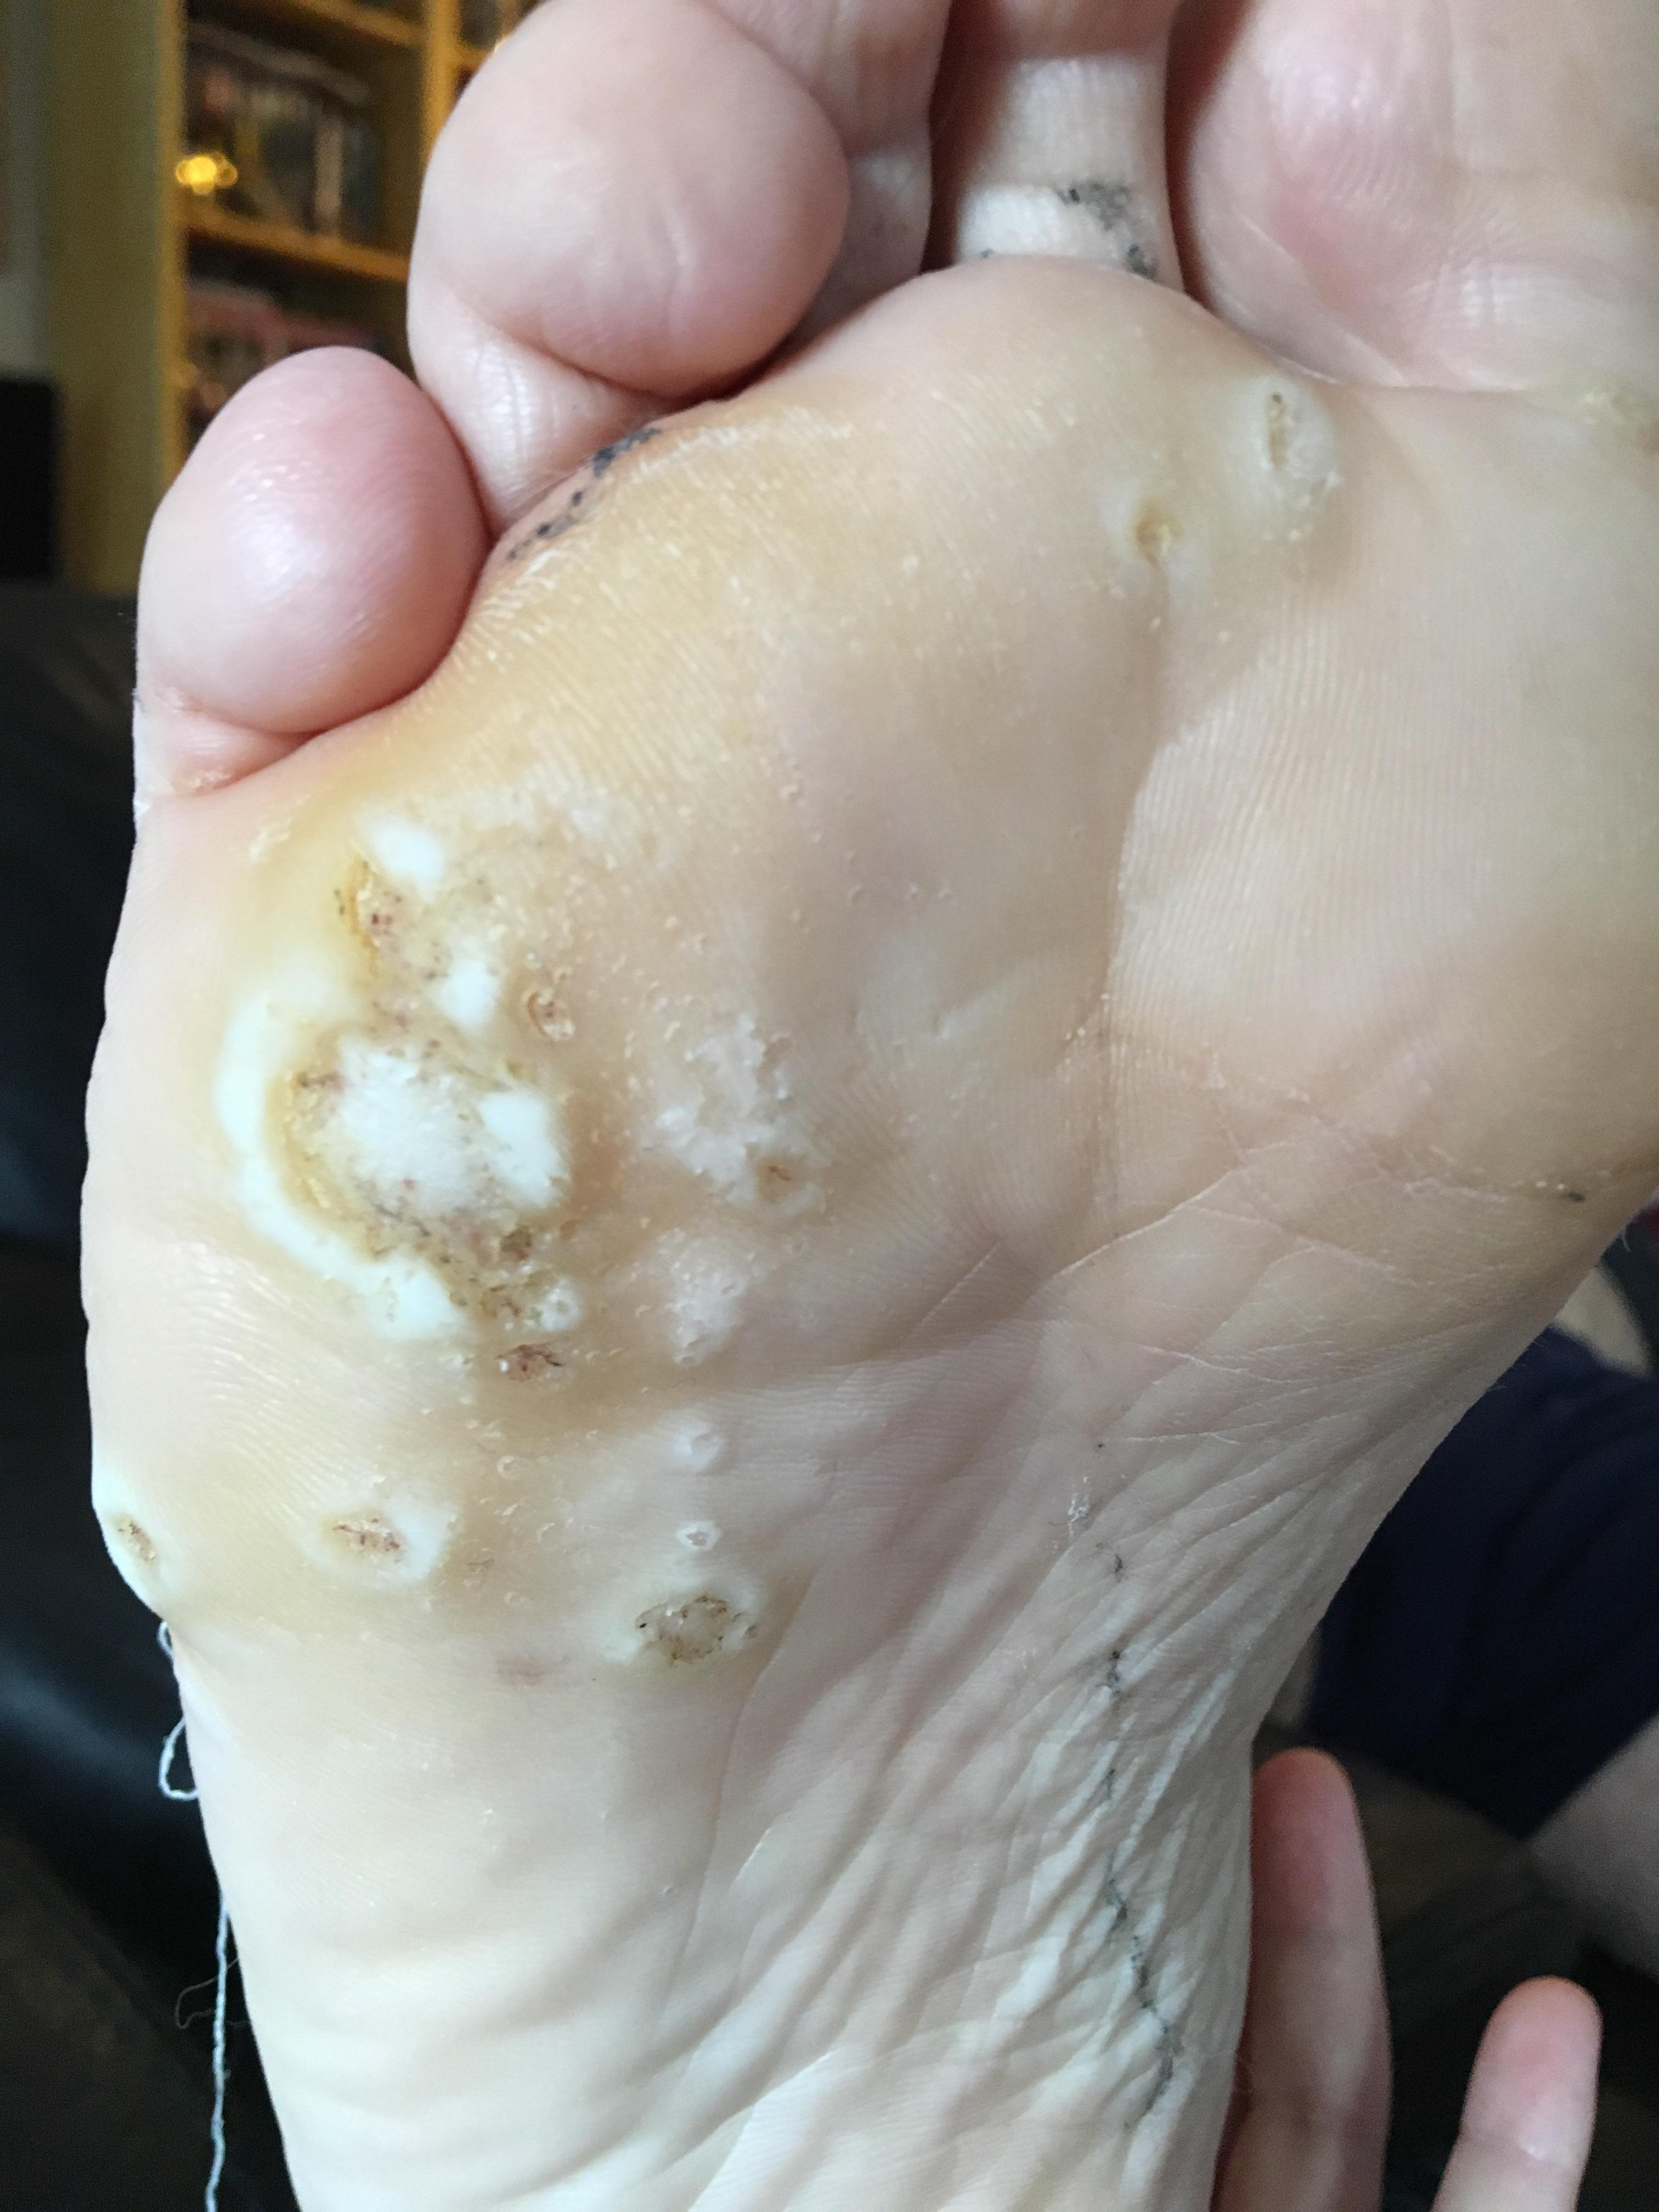 wart treatment using duct tape